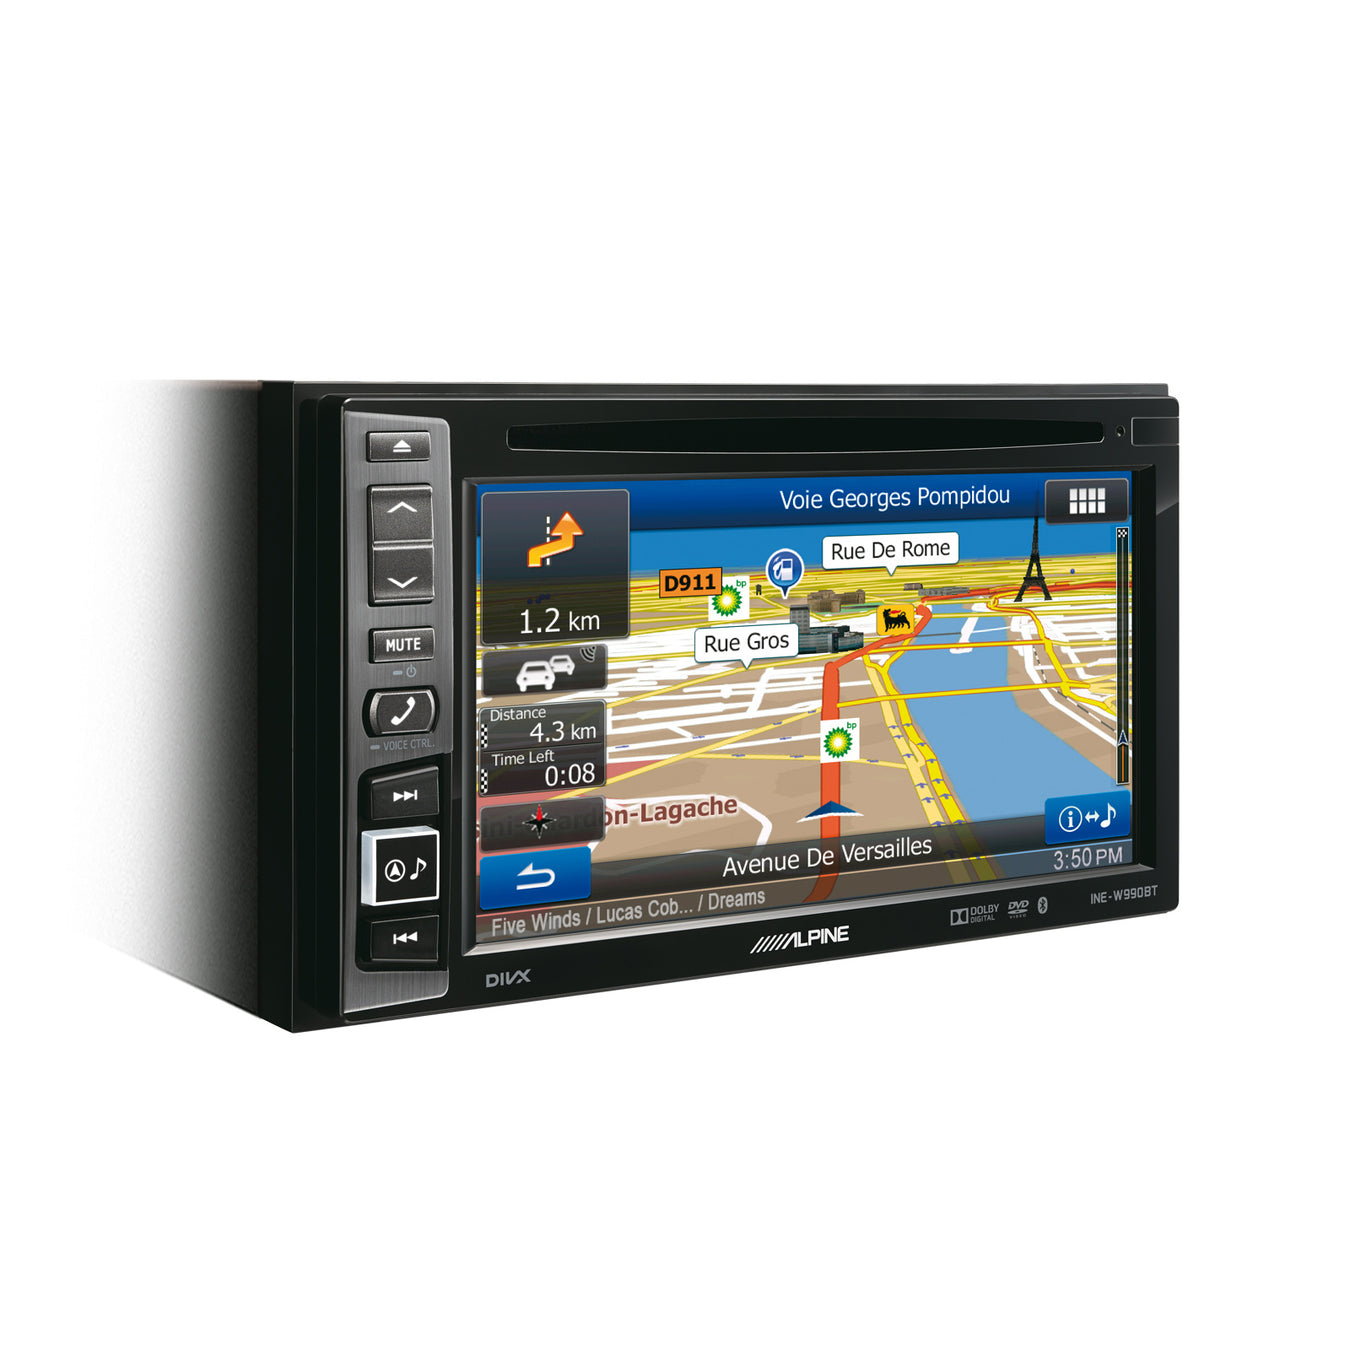 MULTIMEDIA HEAD UNITS